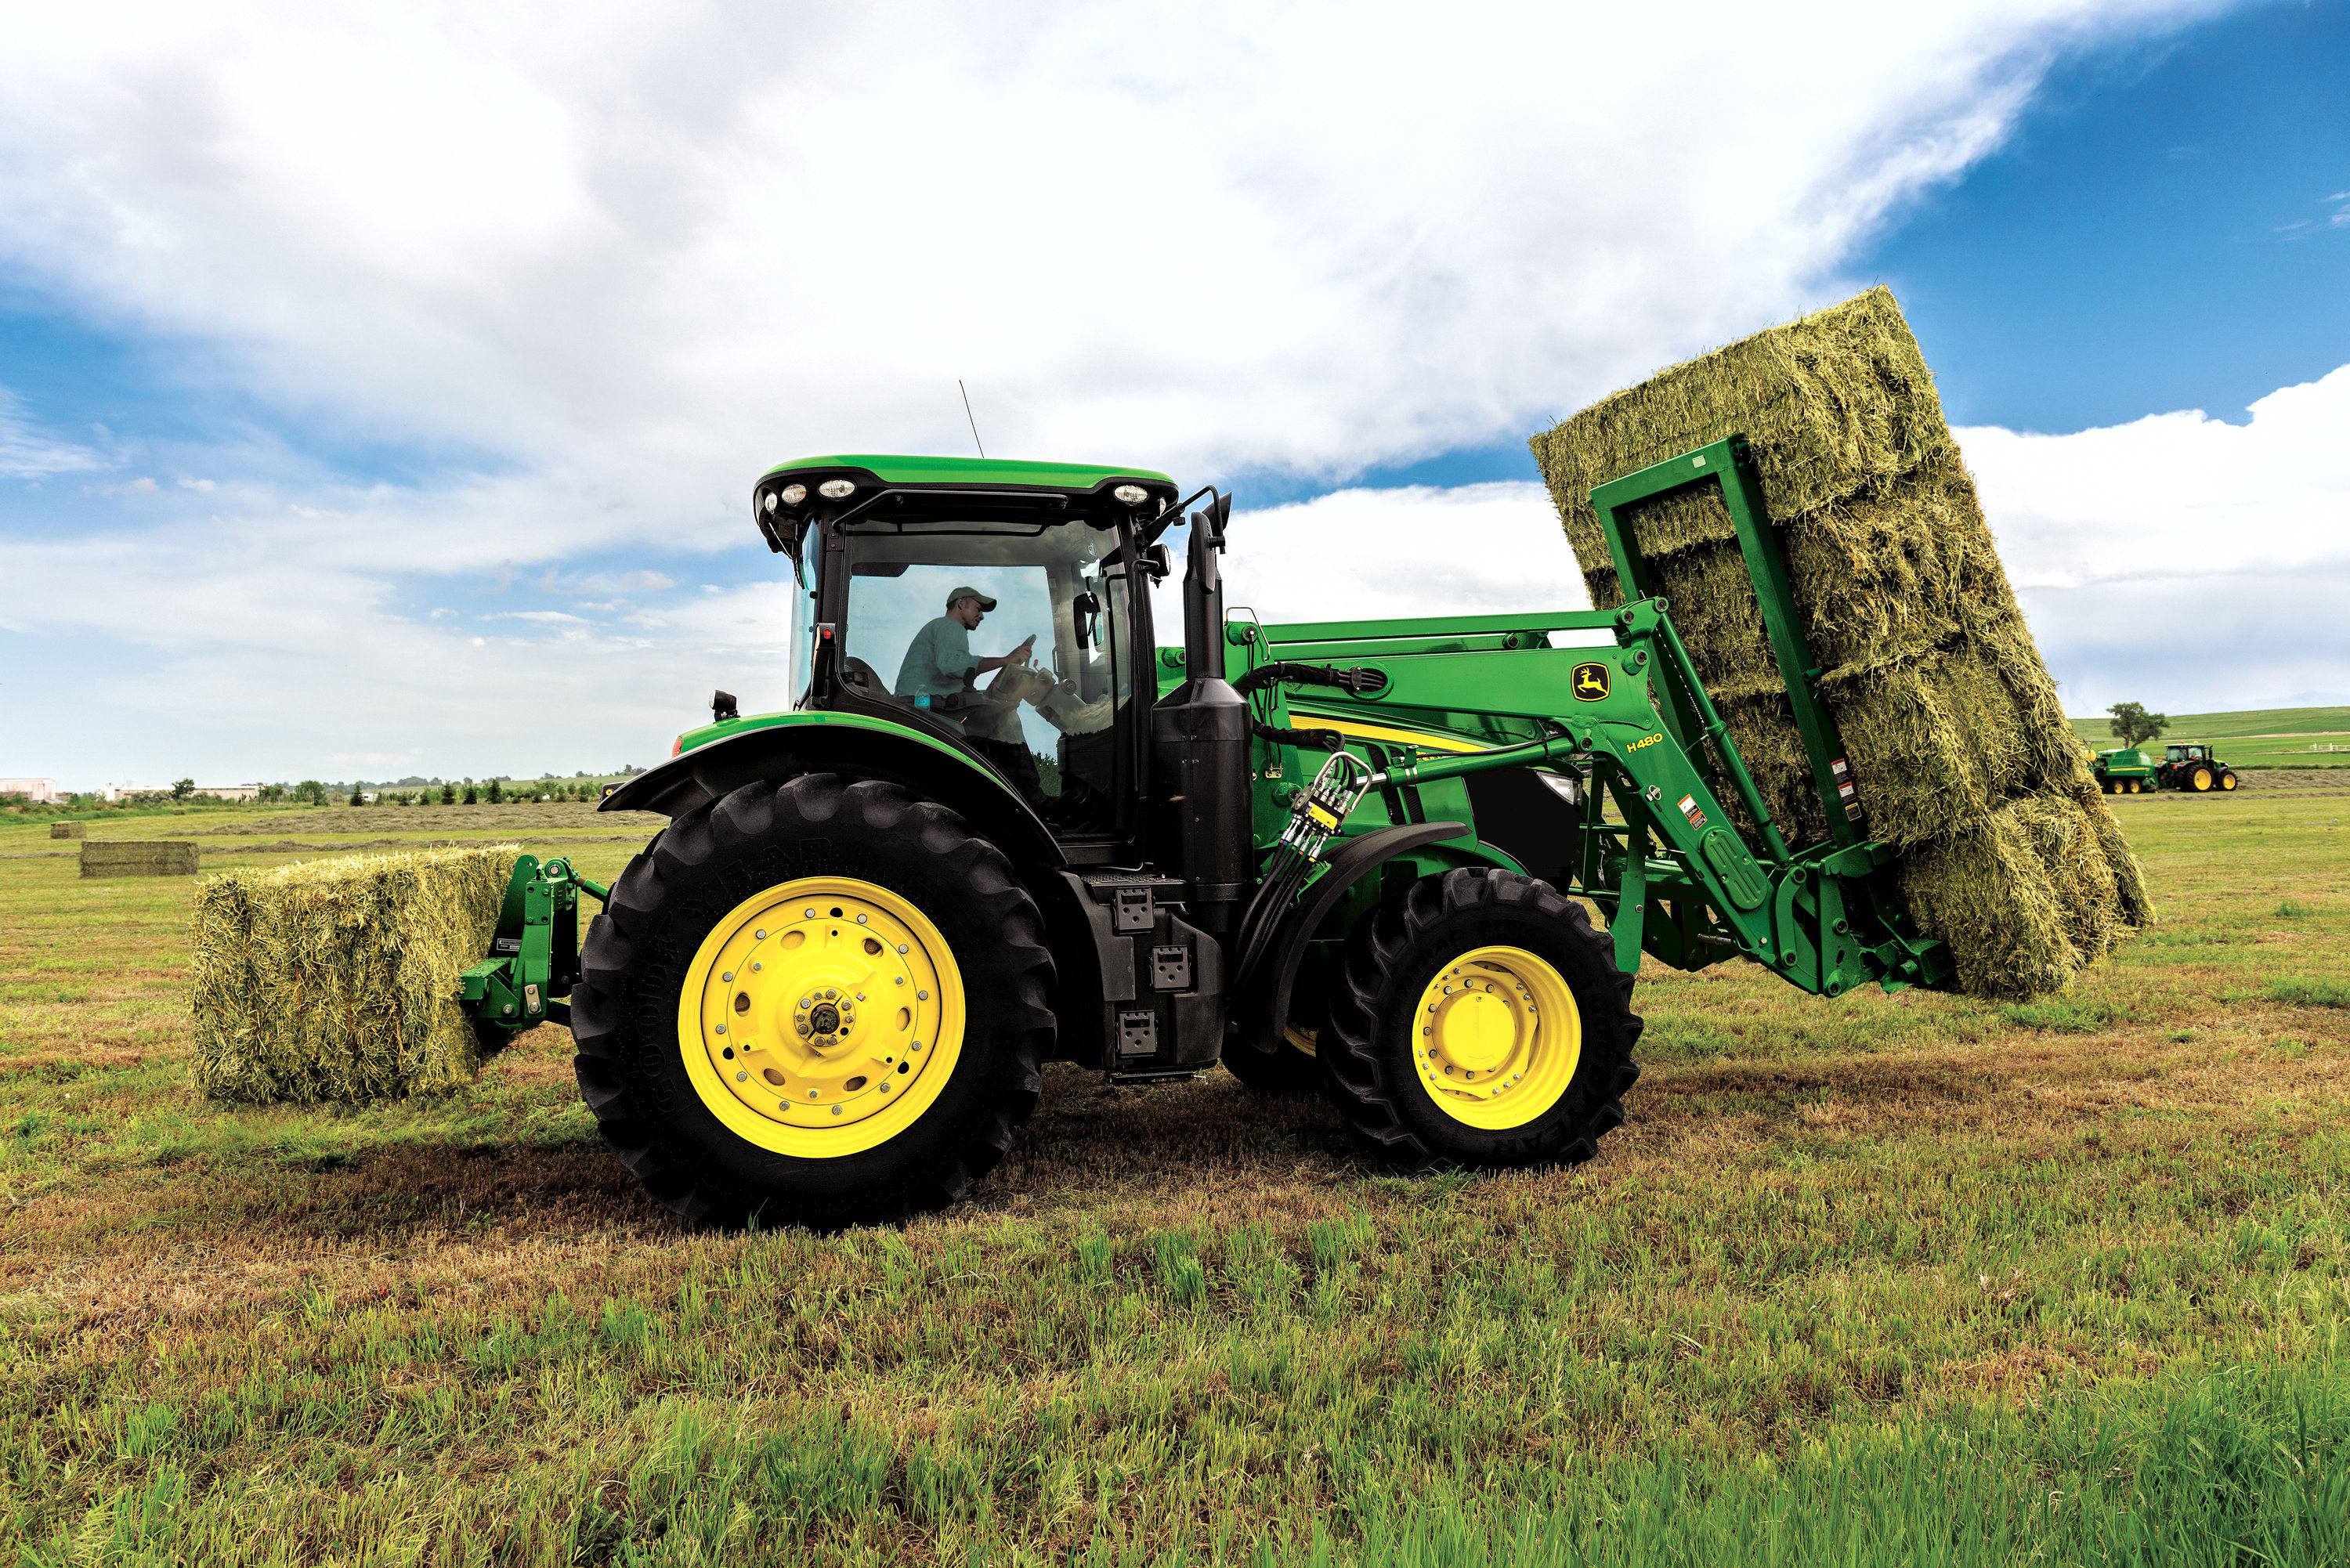 Pulling Up The Curtain On The New Line Of 2015 John Deere